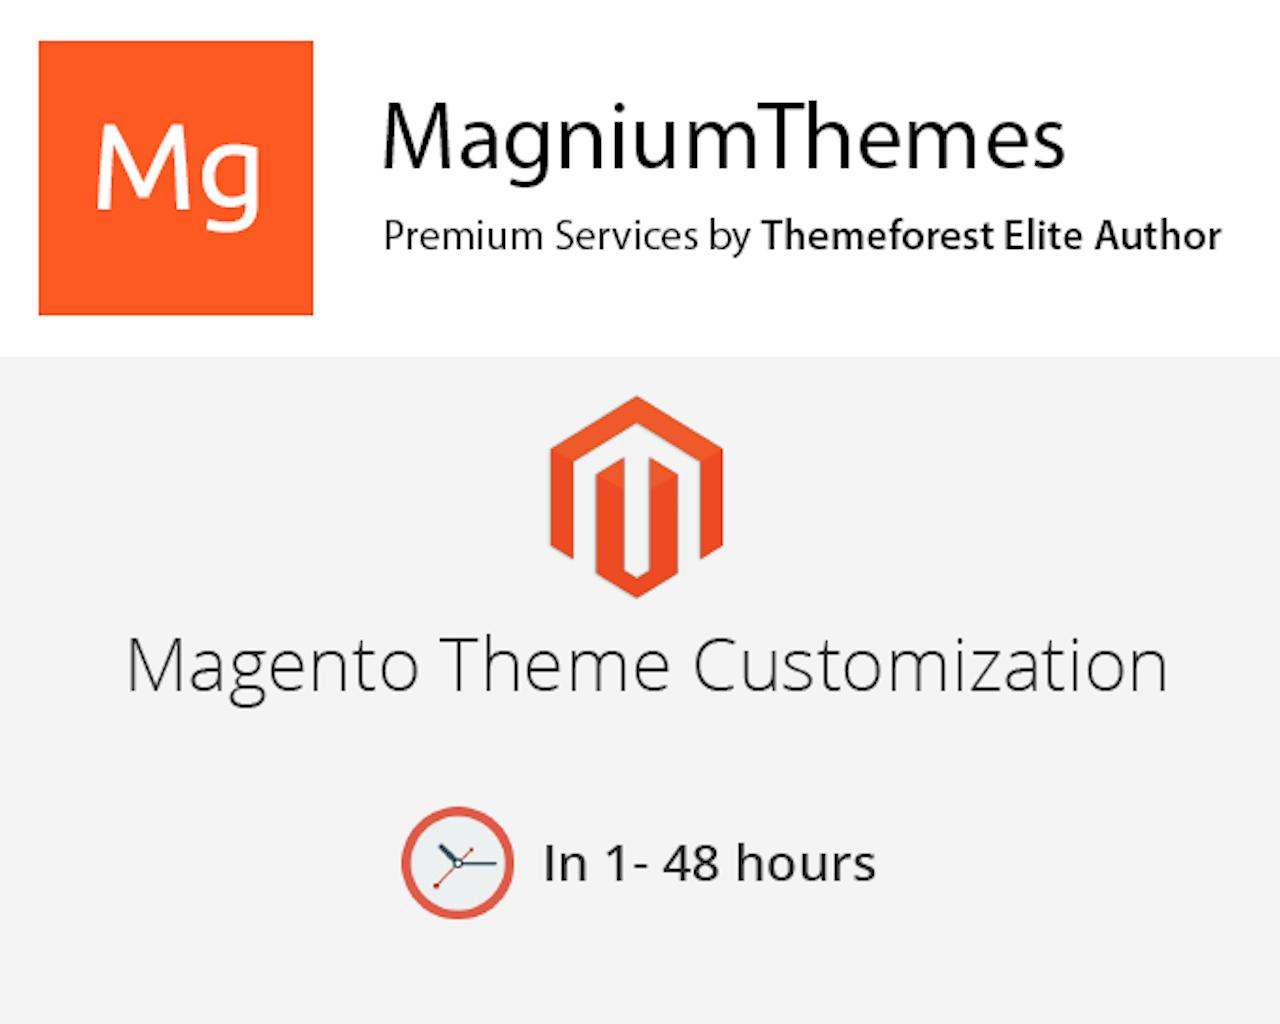 Premium Magento Theme Customization (colors, features, layouts, etc) by Elite Author Team by dedalx - 105775